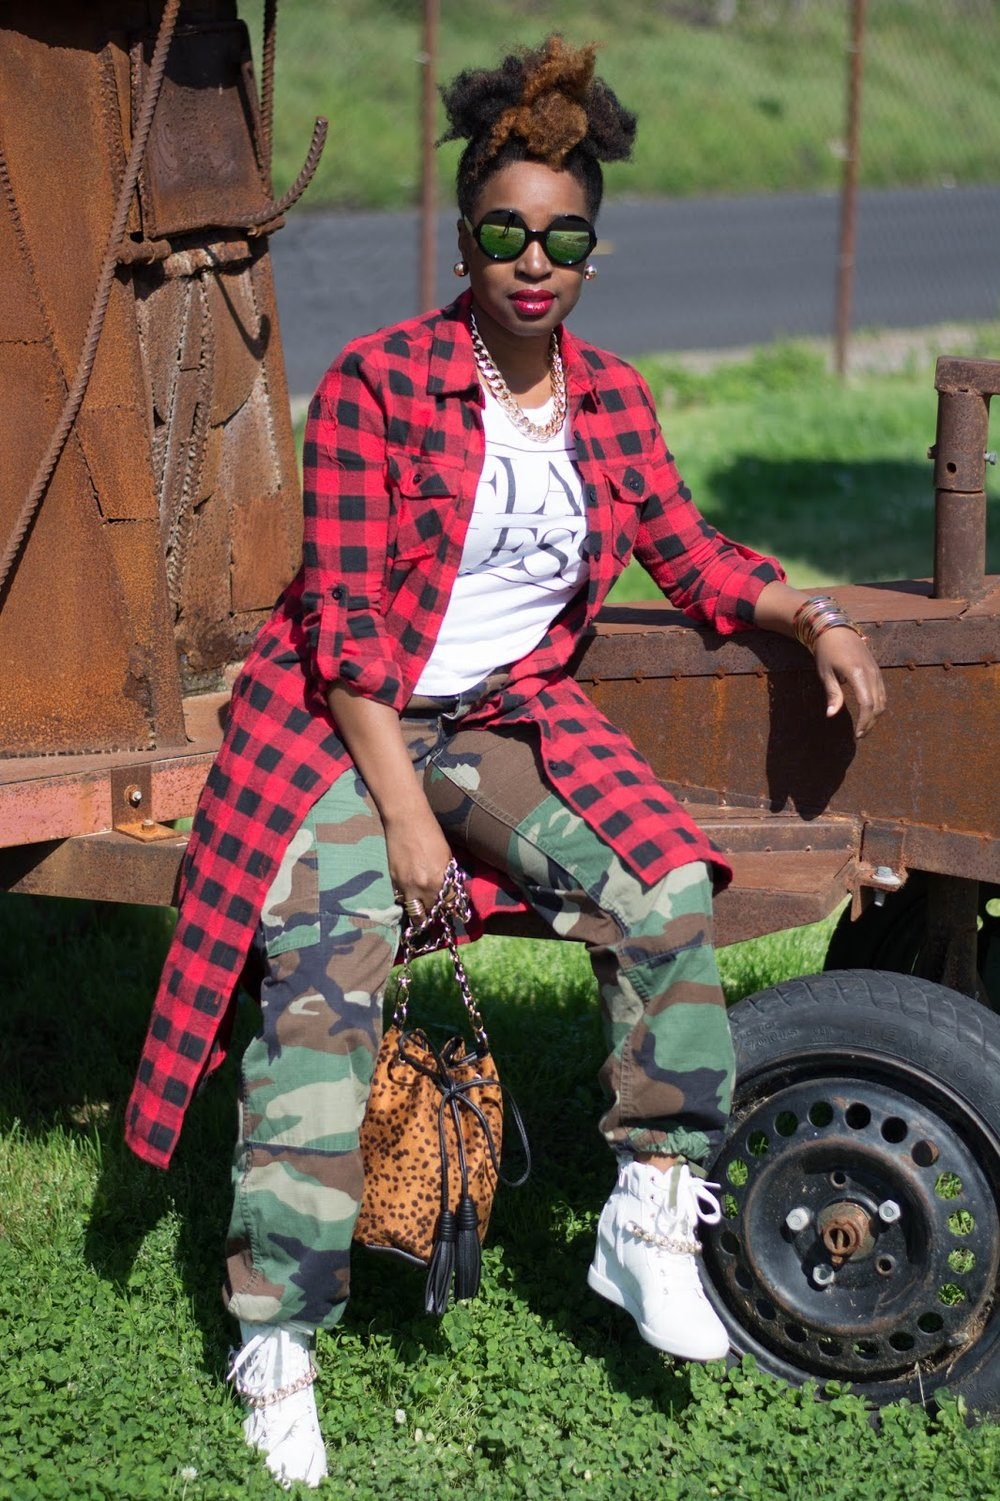 Atlanta bloggers, Atlanta style blogger, Style blogger, Atlanta stylist, Mixed prints, Red flannel duster, Army fatigue, Forever21, JustFab sneakers, Street style, Street fashion, Black bloggers, Black girls rocks, Black girls killing it, Bucket bag